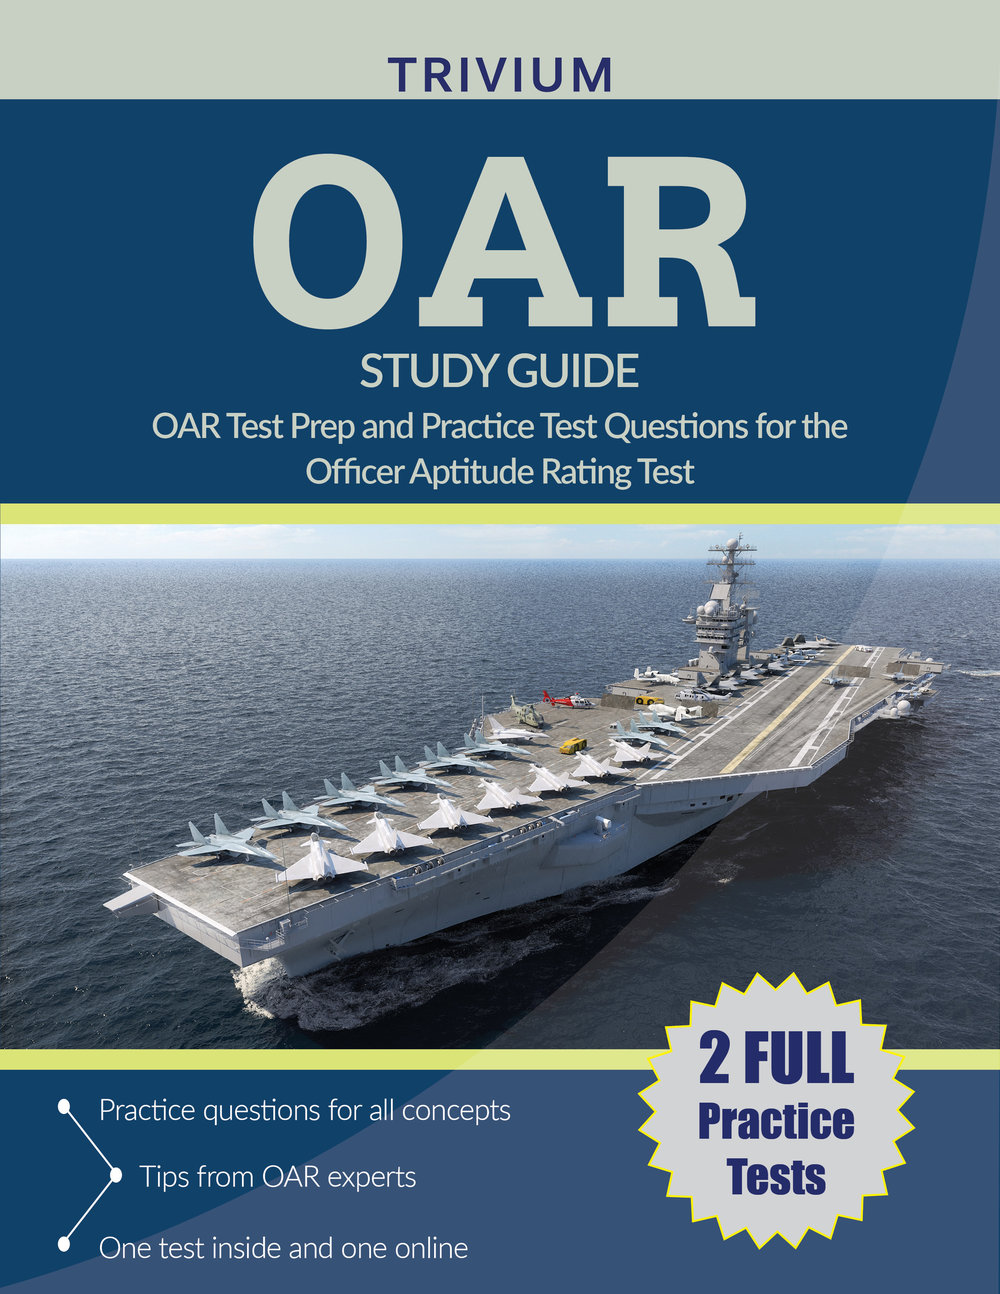 OAR_cover_website.jpg